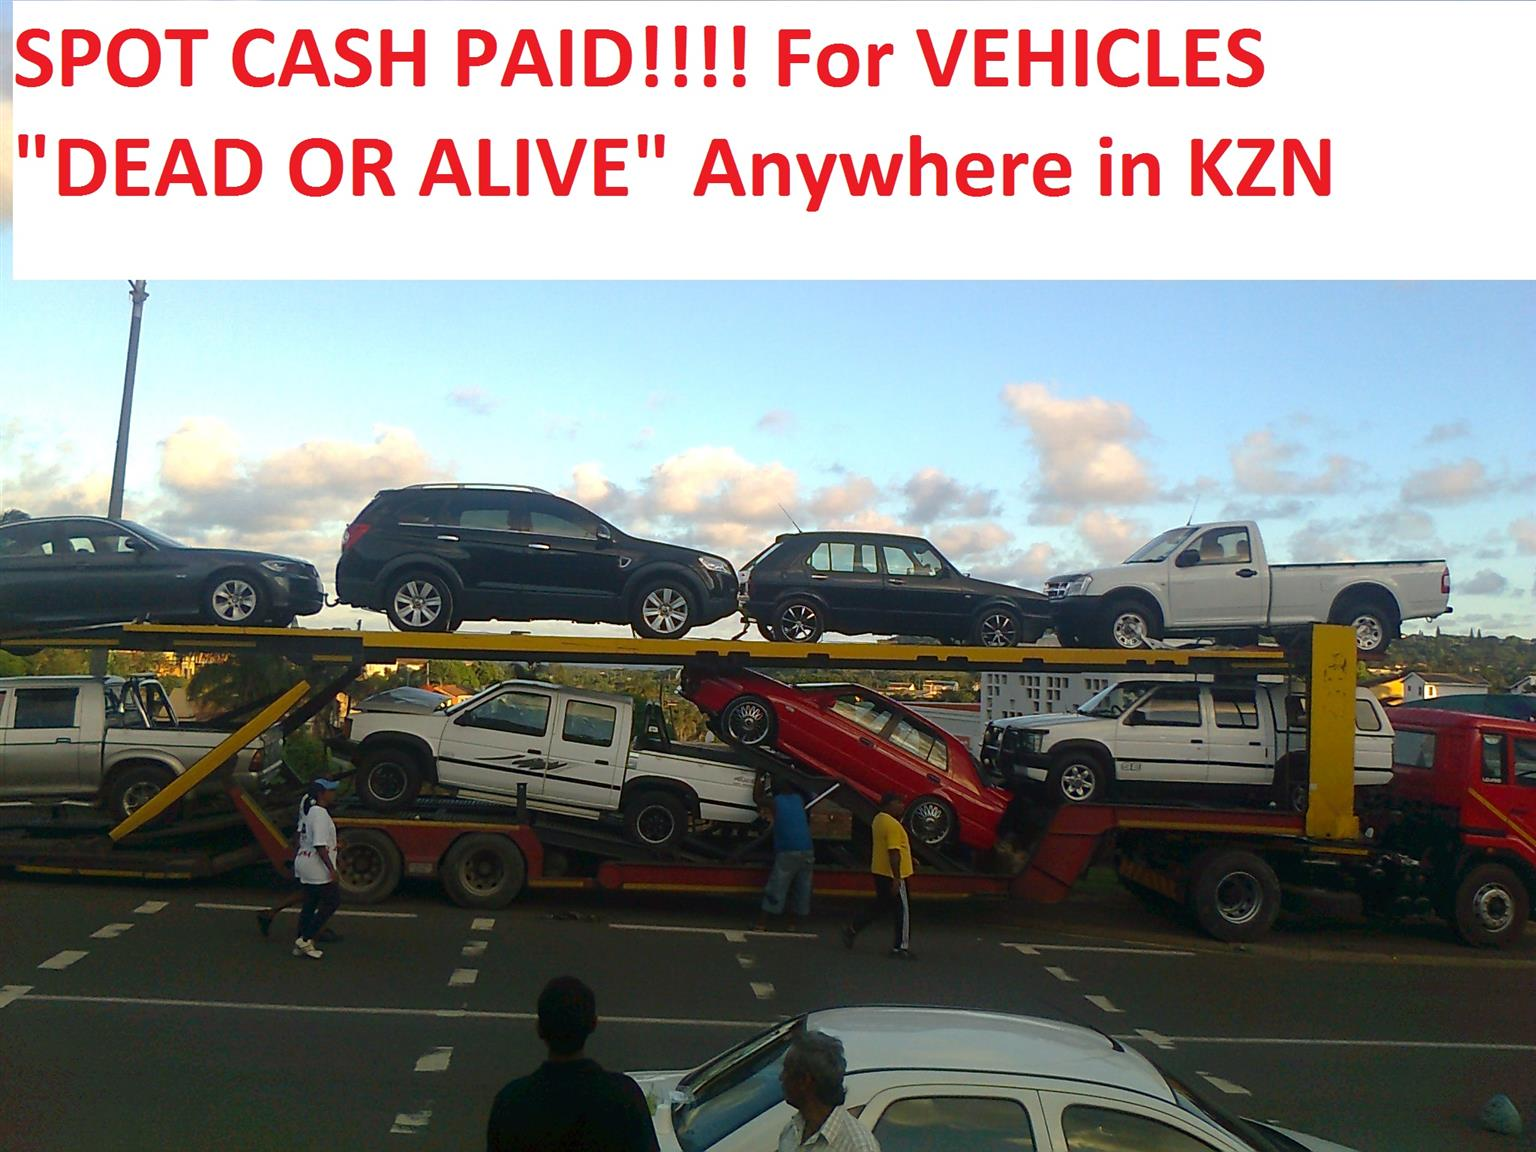 CASH FOR CARS & BAKKIES : NON RUNNERS - USED - ACCIDENT DAMAGED - UNLICENSED * Anywhere in KZN